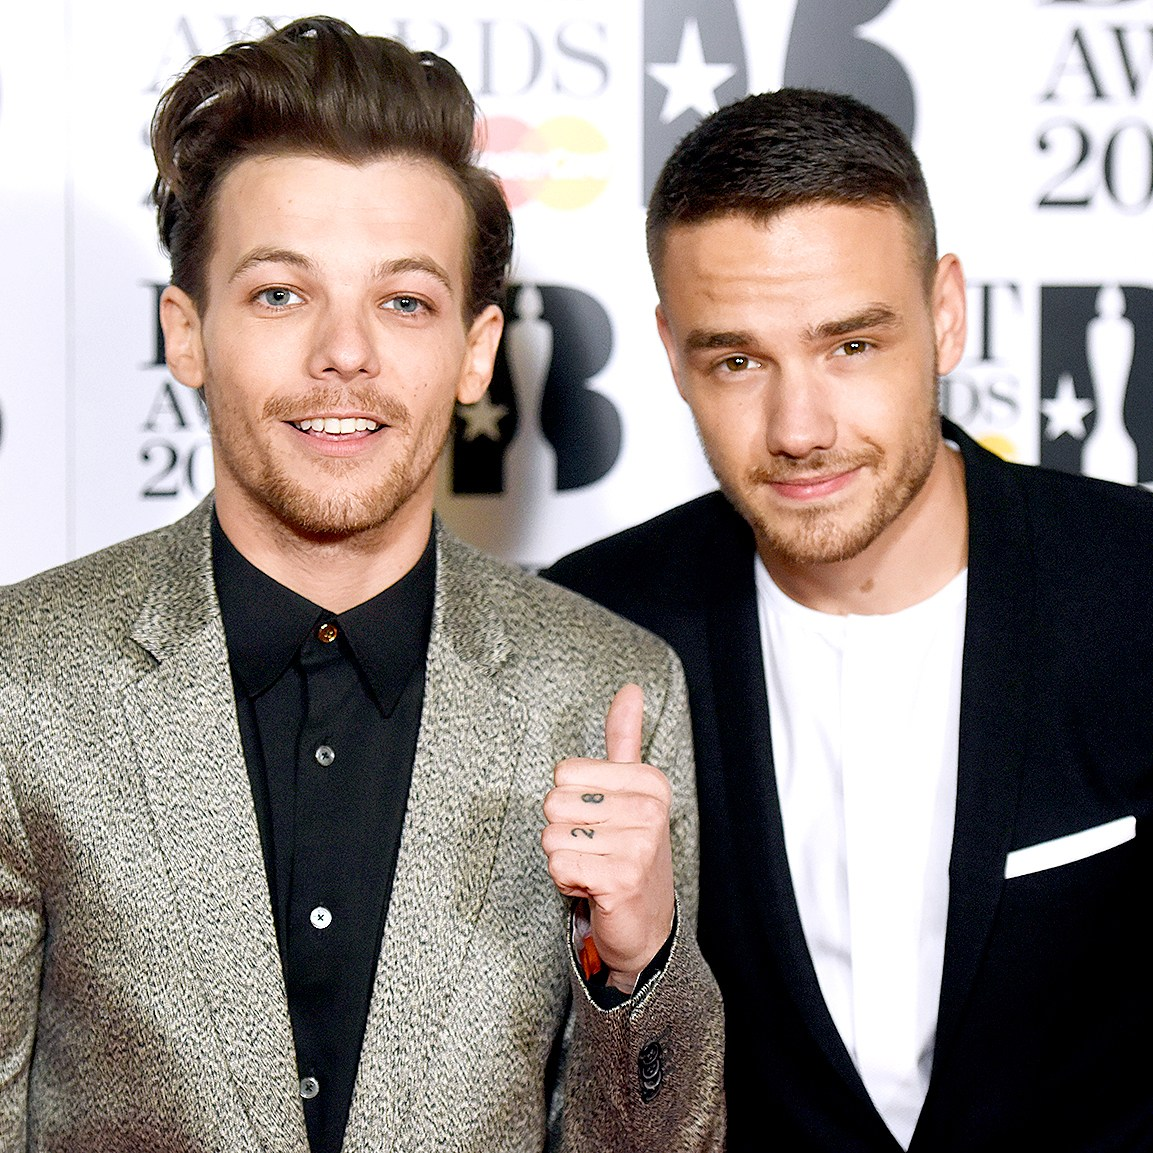 Louis Tomlinson and Liam Payne attend the BRIT Awards 2016 at The O2 Arena on February 24, 2016 in London, England.